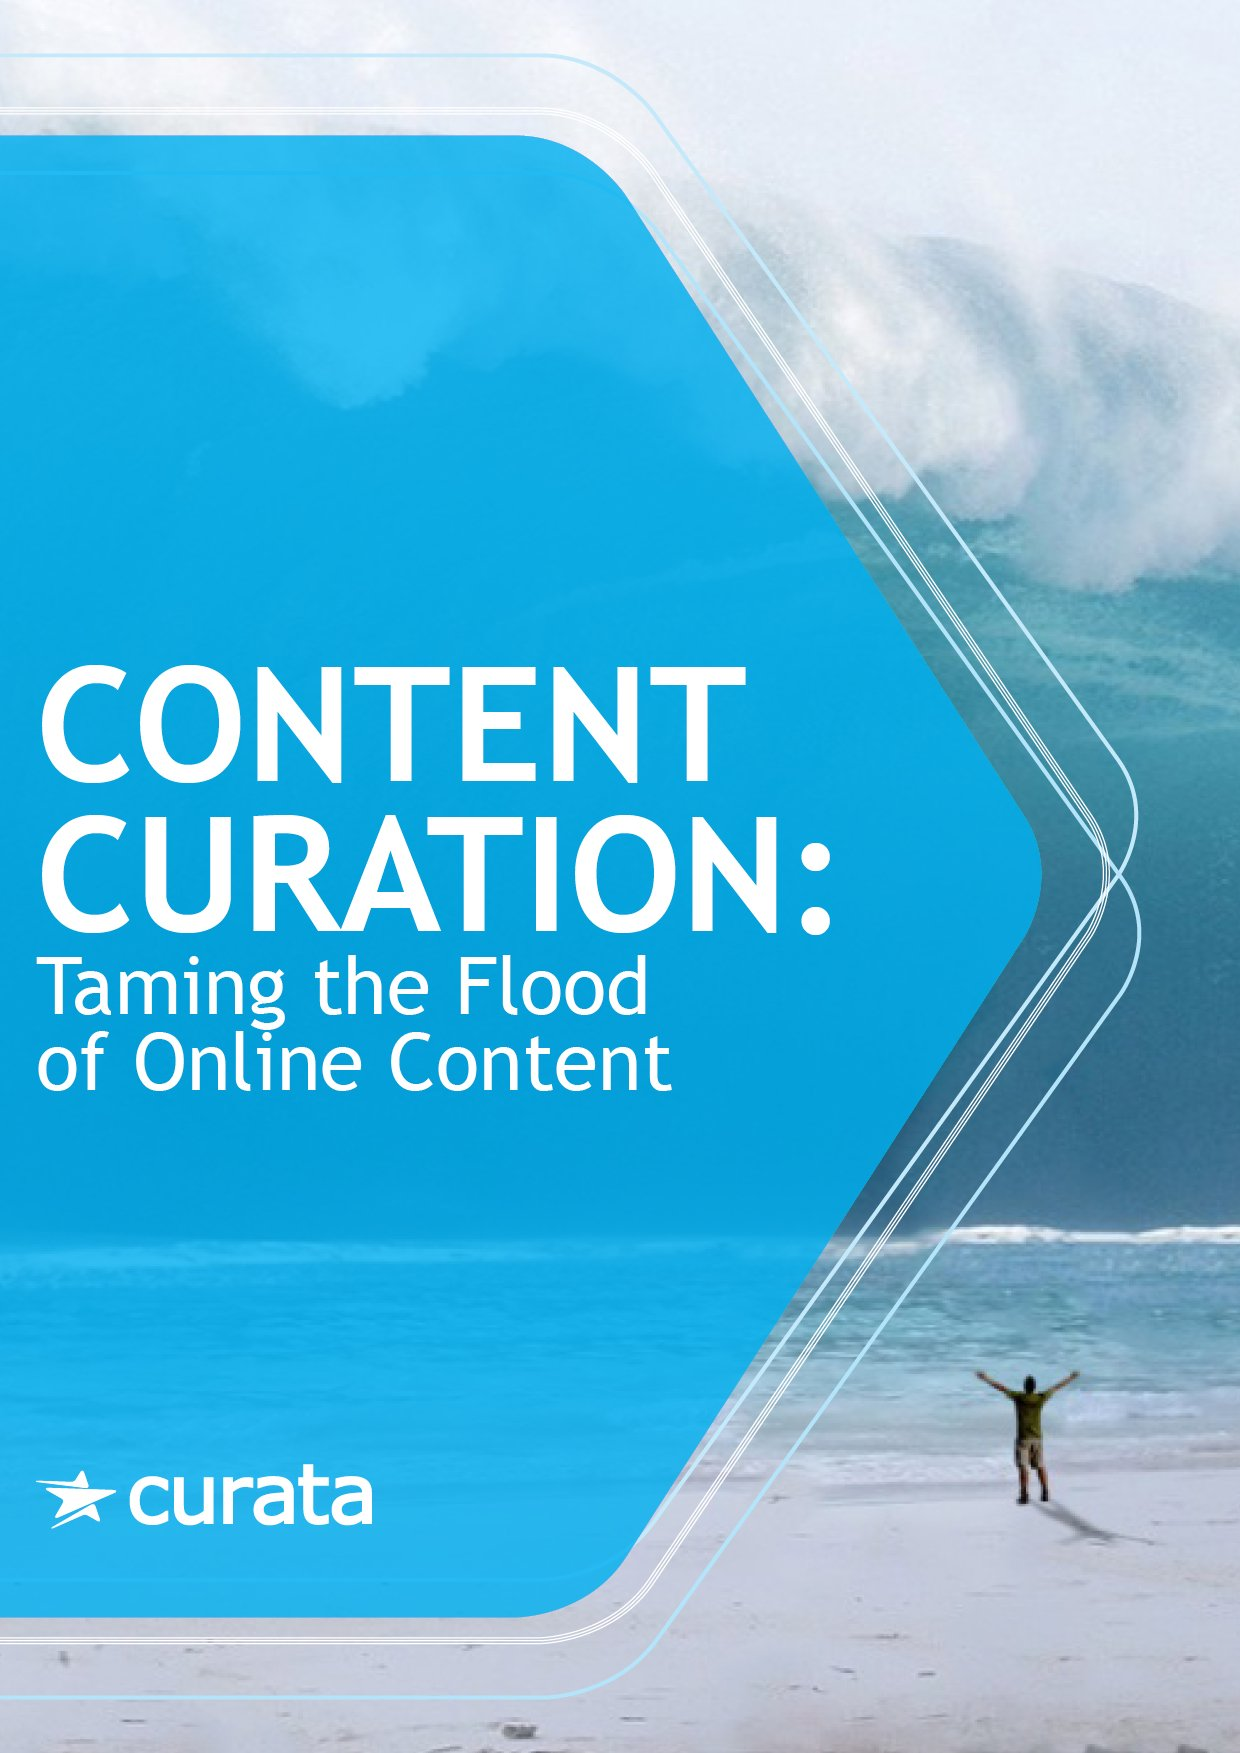 Content Curation - Taming the Flood of Online Content